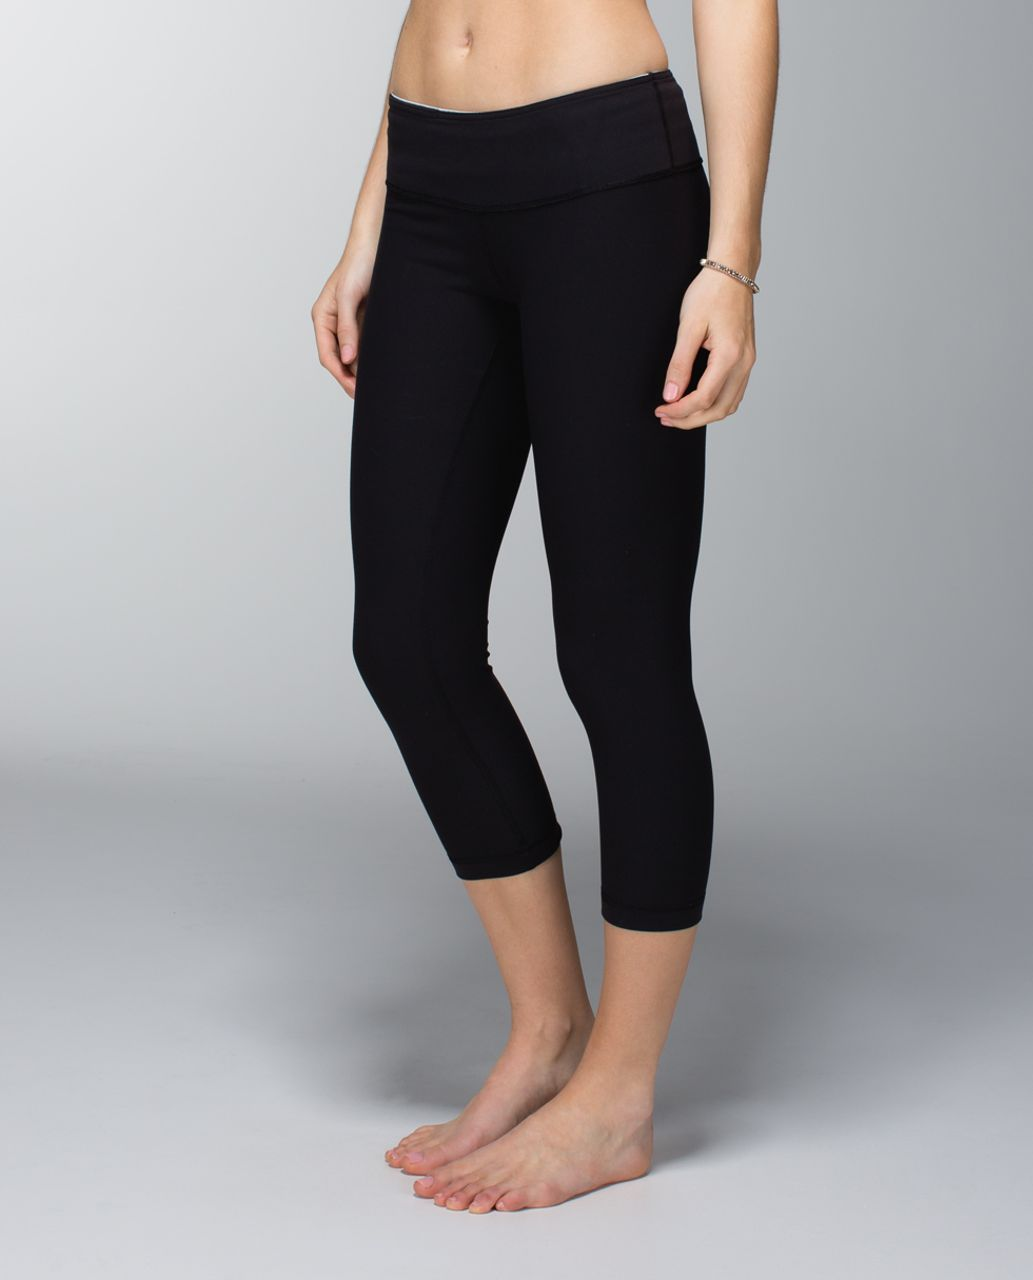 Lululemon Wunder Under Crop *Full-On Luon - Black / Quilt Spring 14-09